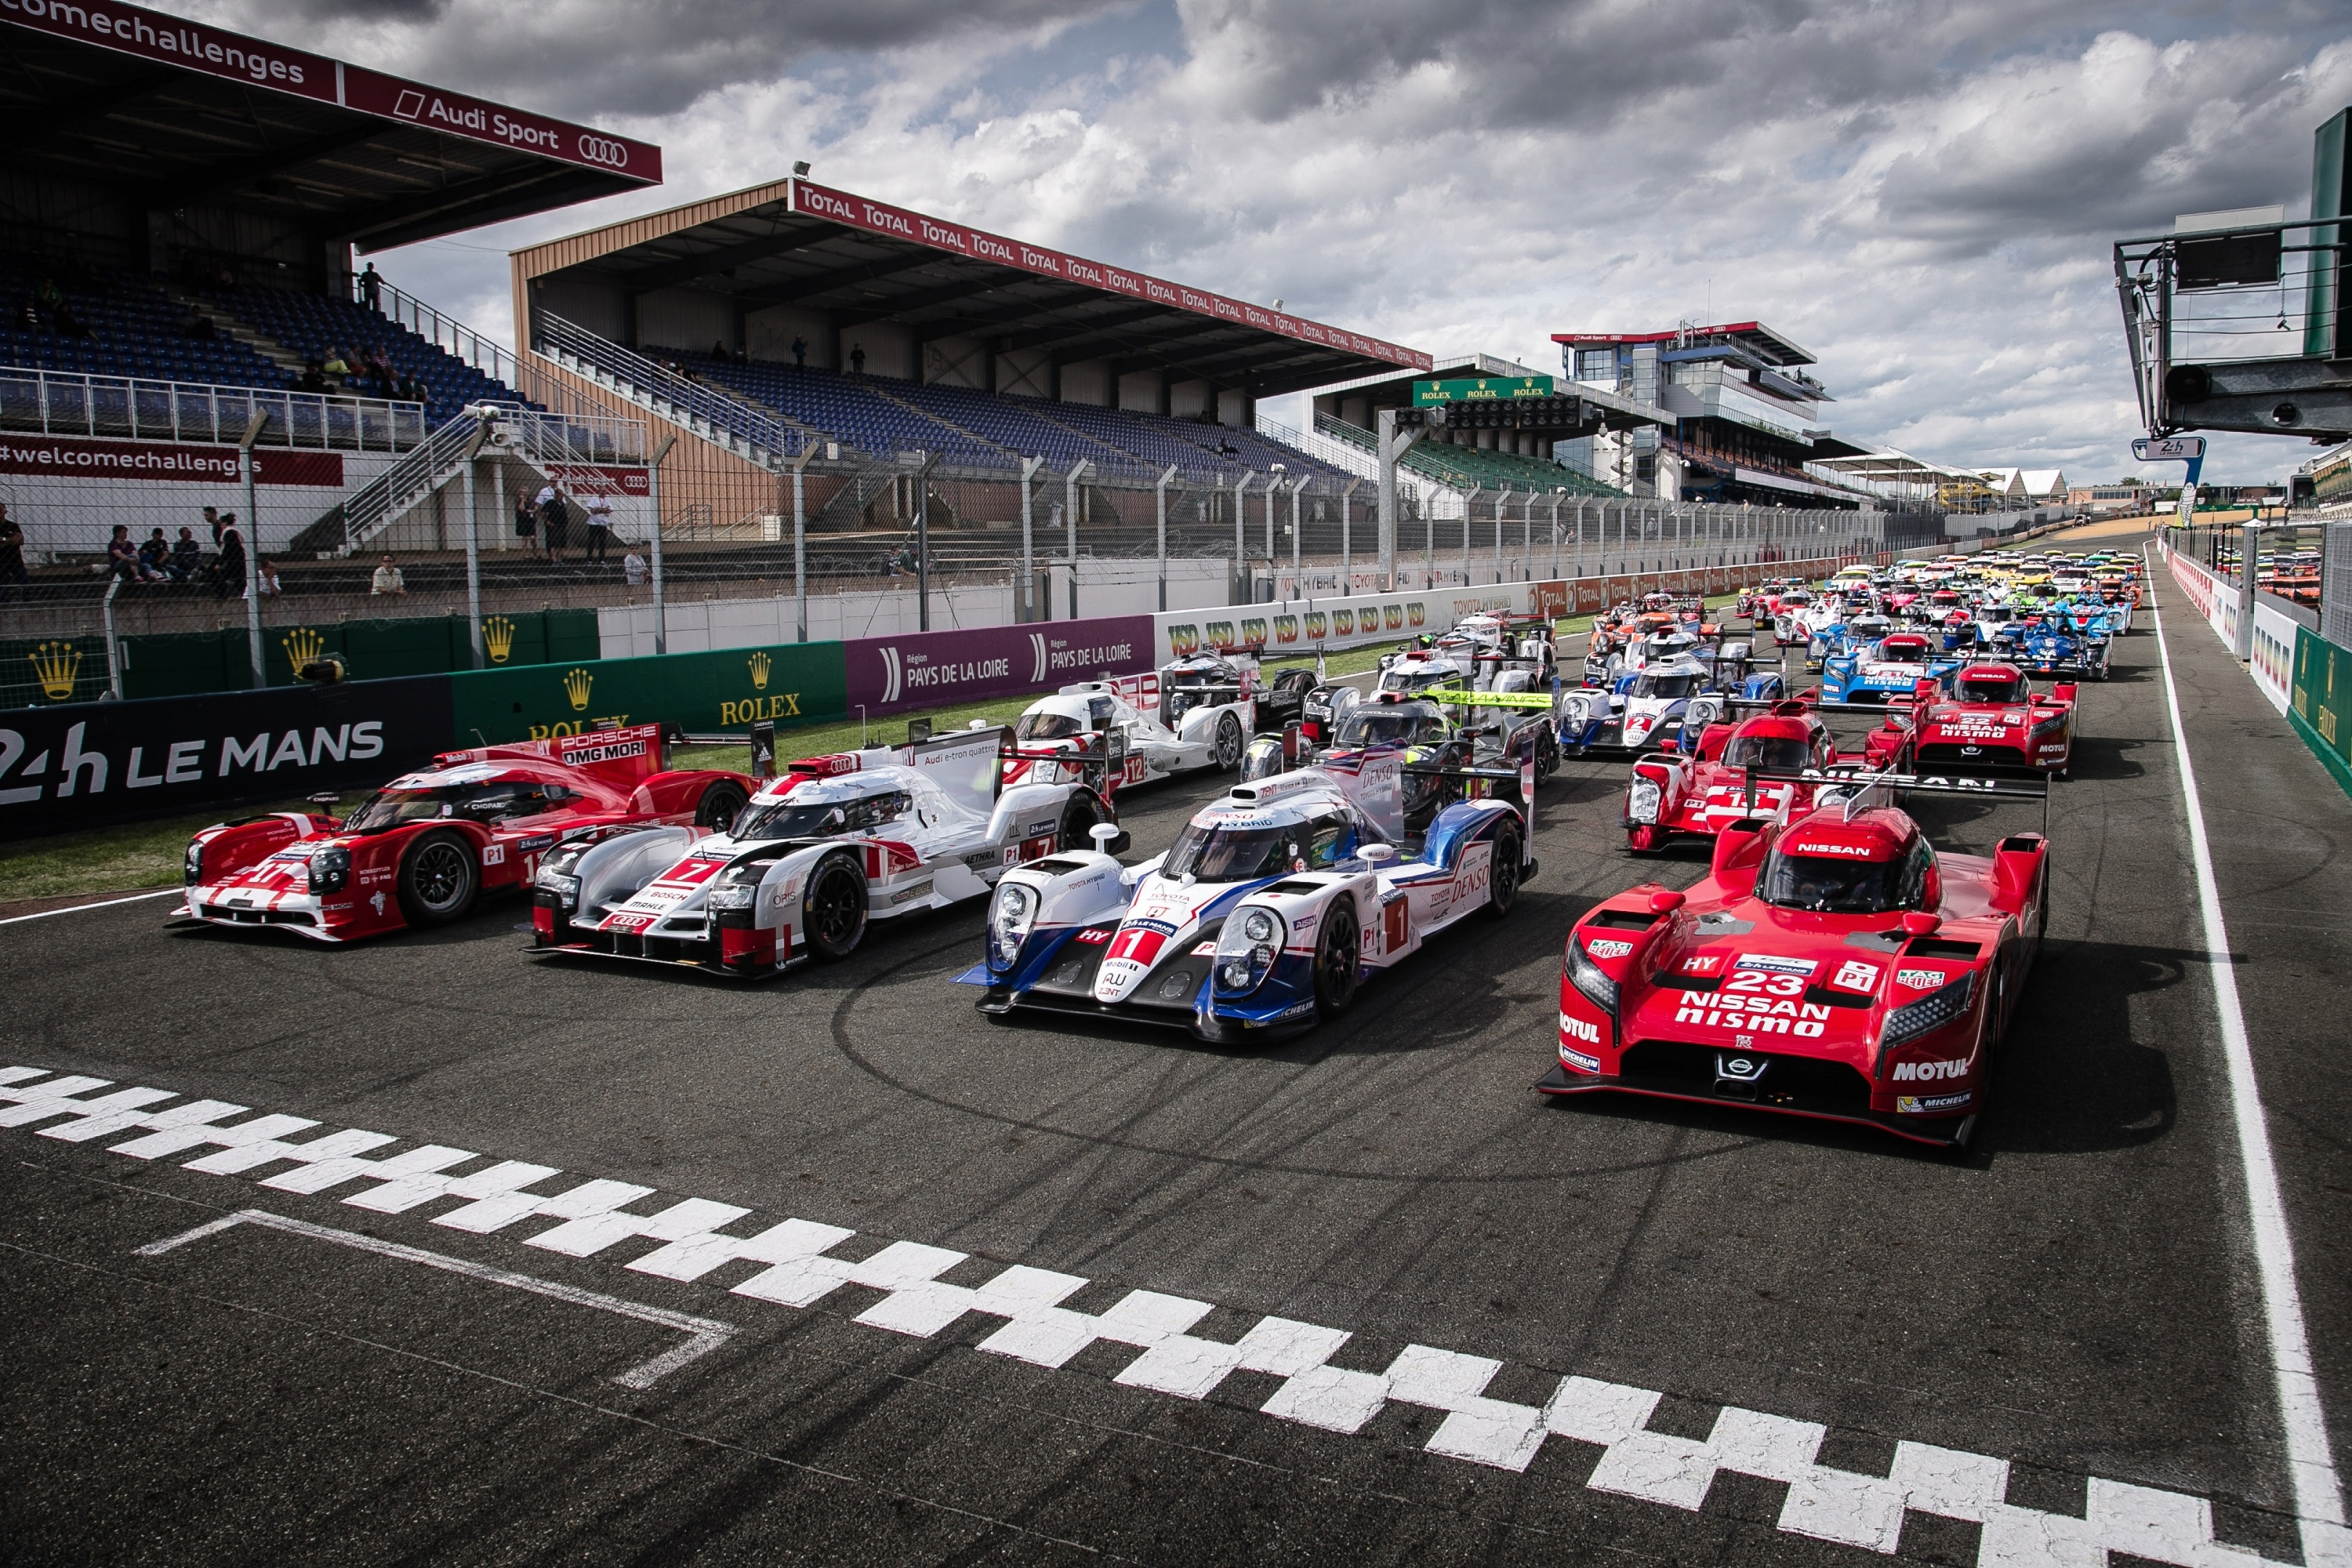 hyper hybrids battle at le mans this weekend don t miss it ars technica. Black Bedroom Furniture Sets. Home Design Ideas